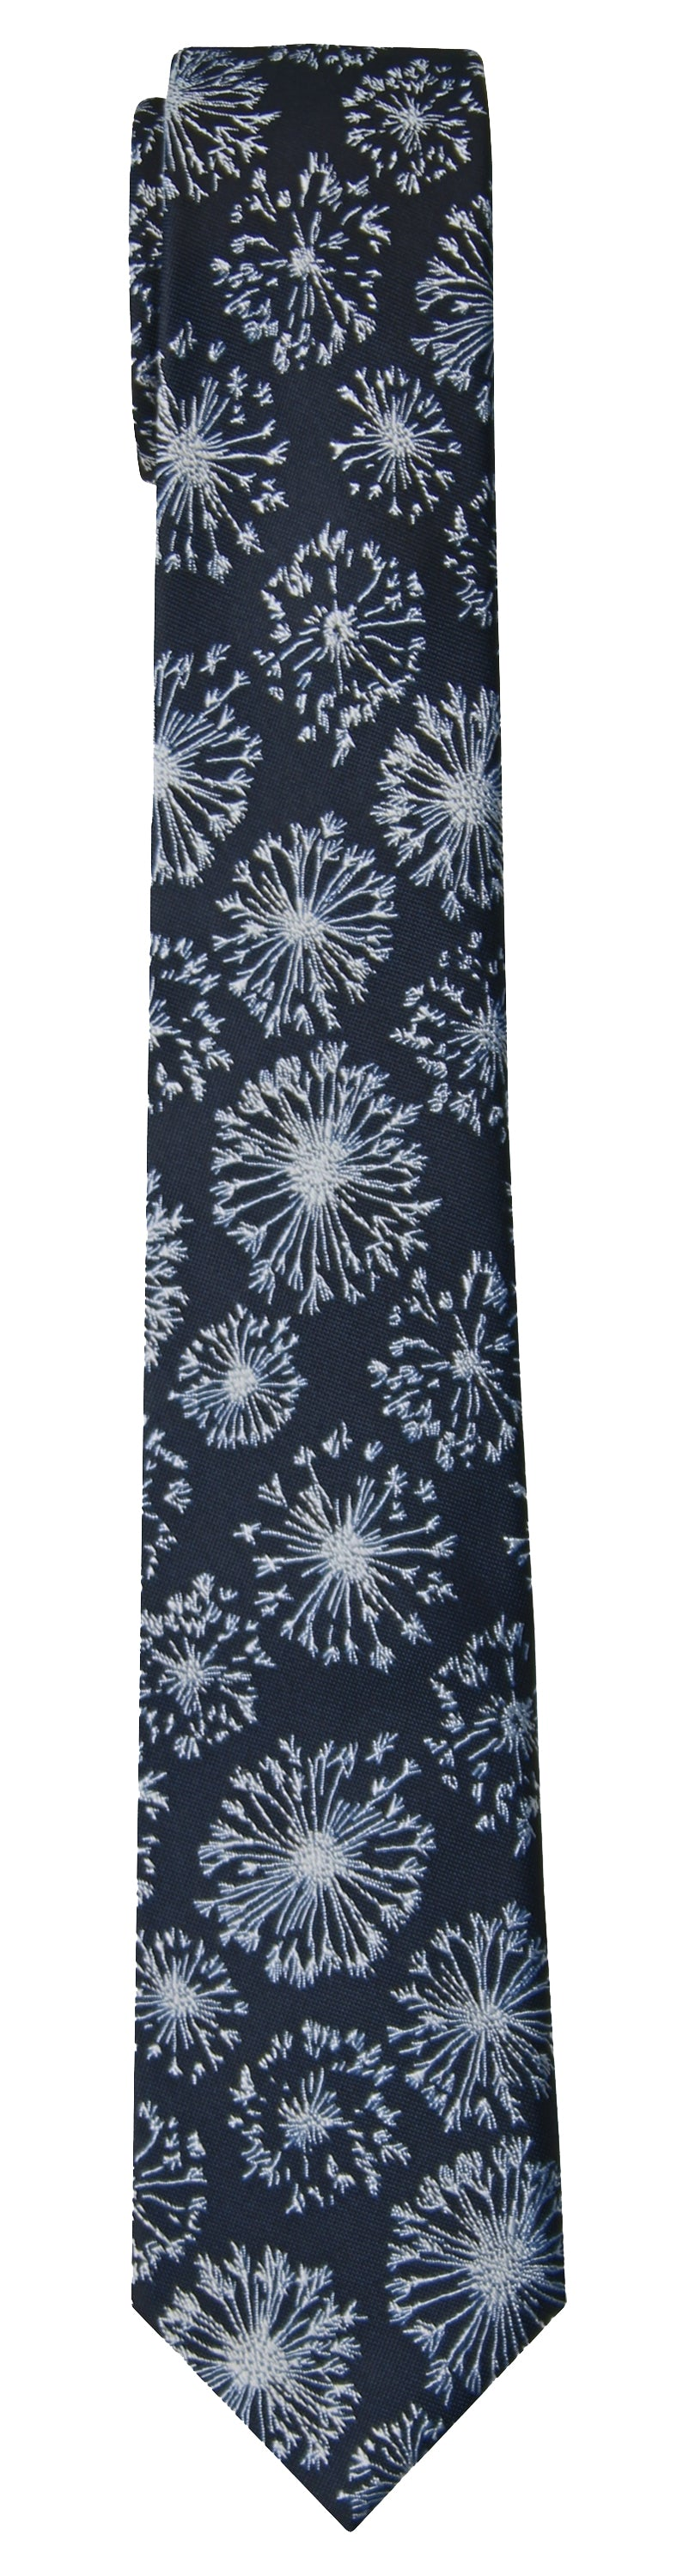 Mimi Fong Dandelion TIe in Midnight